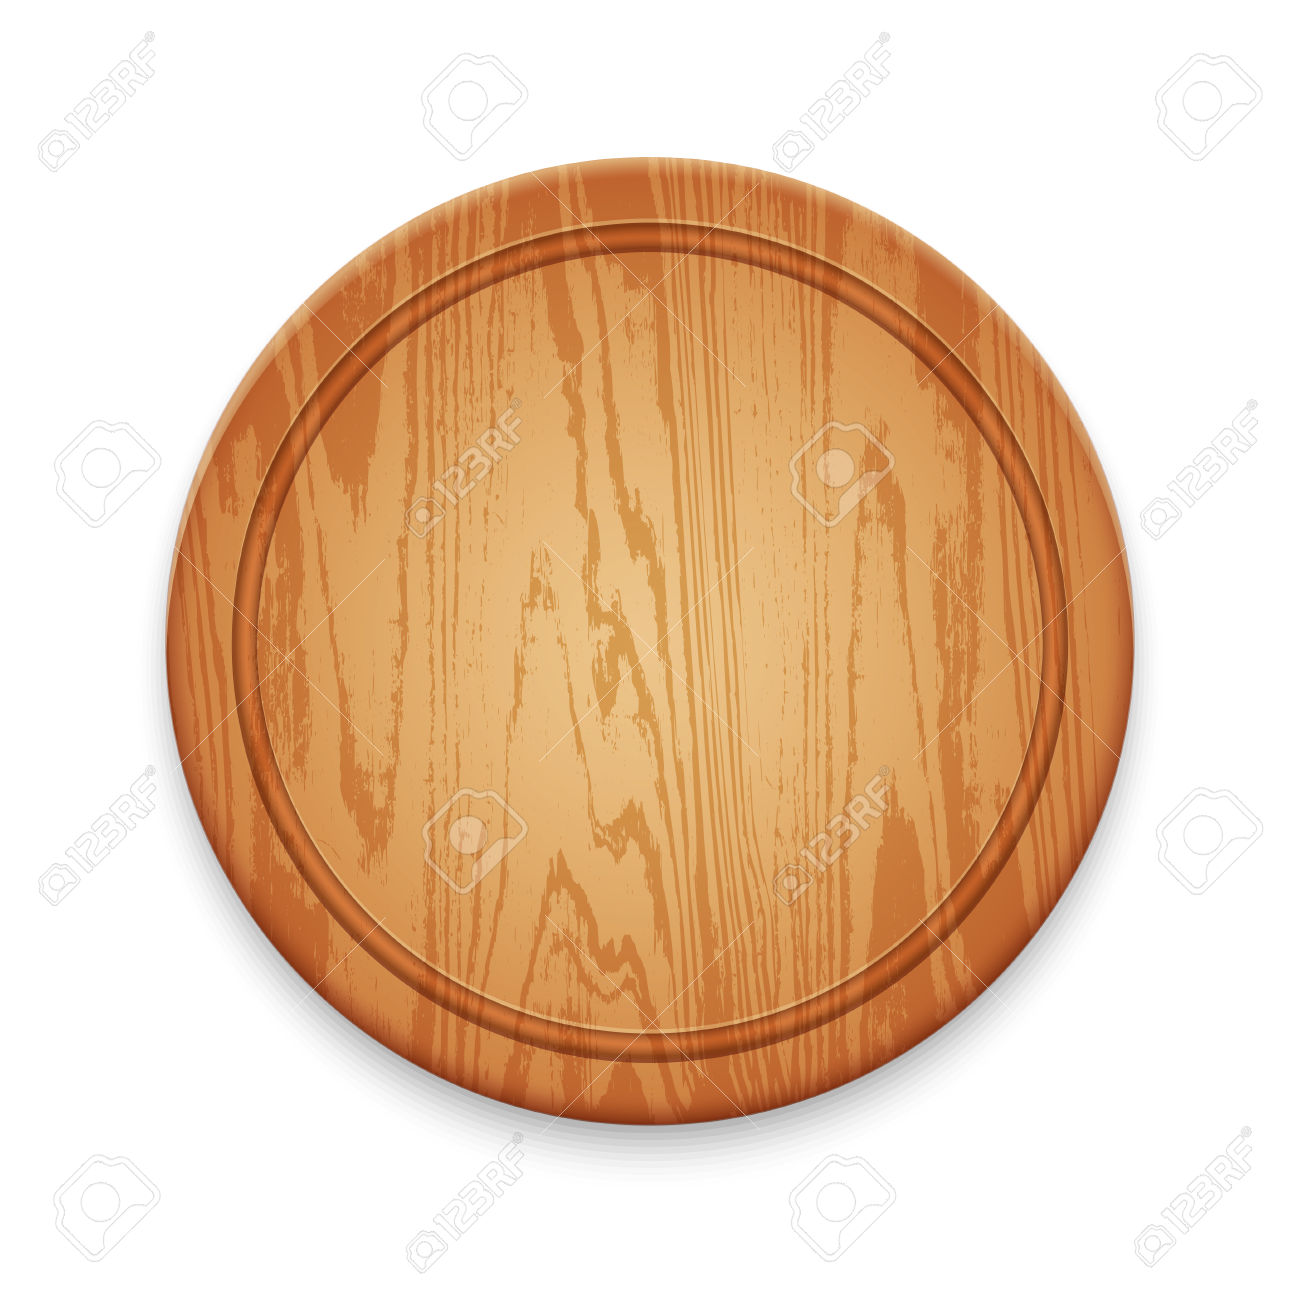 Wooden Empty Round Cutting Board Isolated On White Background.